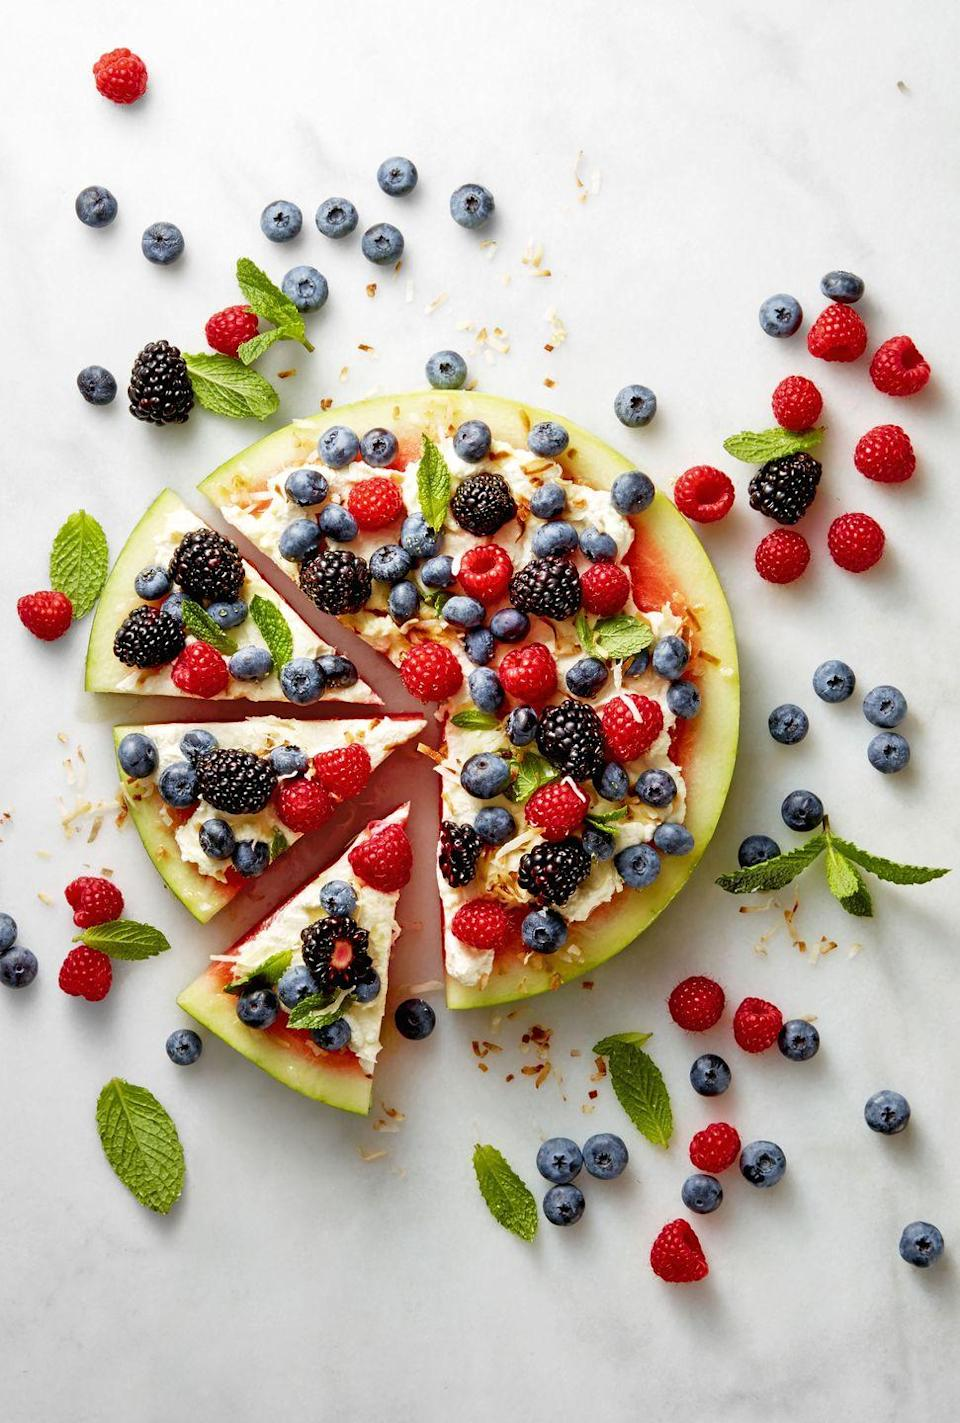 "<p>This patriotic ""pie"" is delicious any way you slice it. </p><p><a href=""https://www.goodhousekeeping.com/food-recipes/a39347/watermelon-pizza-recipe/"" rel=""nofollow noopener"" target=""_blank"" data-ylk=""slk:Get the recipe for Watermelon Pizza »"" class=""link rapid-noclick-resp""><em>Get the recipe for Watermelon Pizza » </em></a><br></p>"